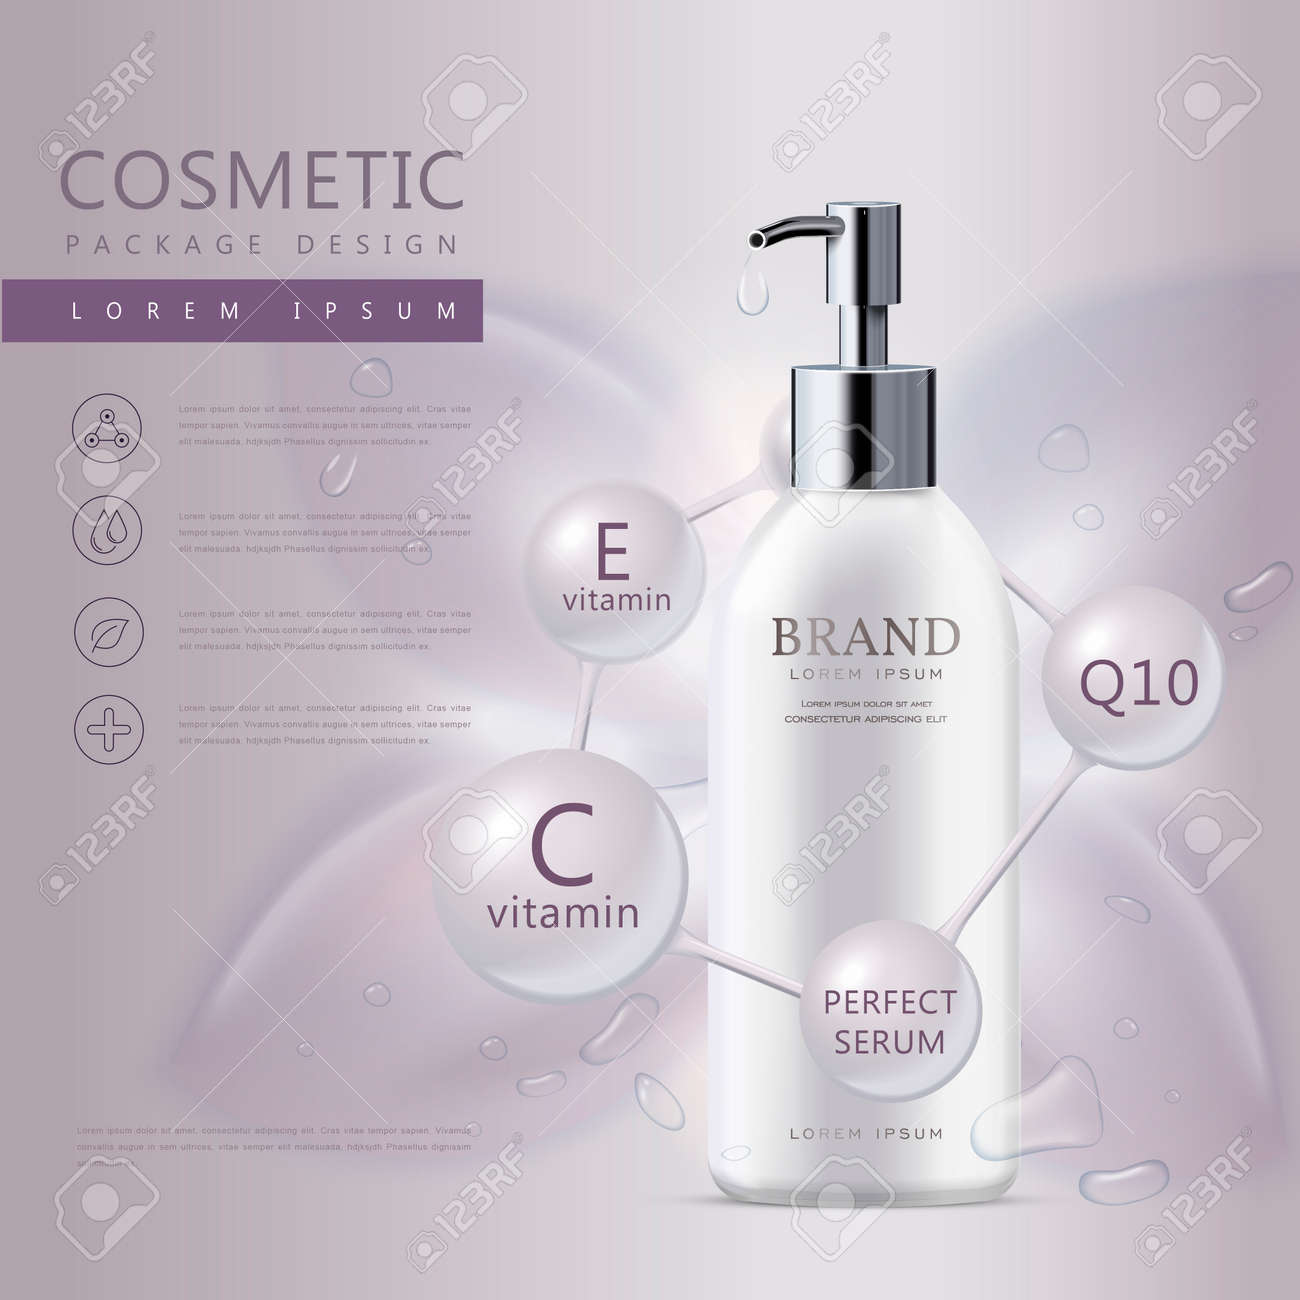 Cosmetic product poster, white liquid soap bottle with water drops isolated on purple background, 3D illustration - 63775705